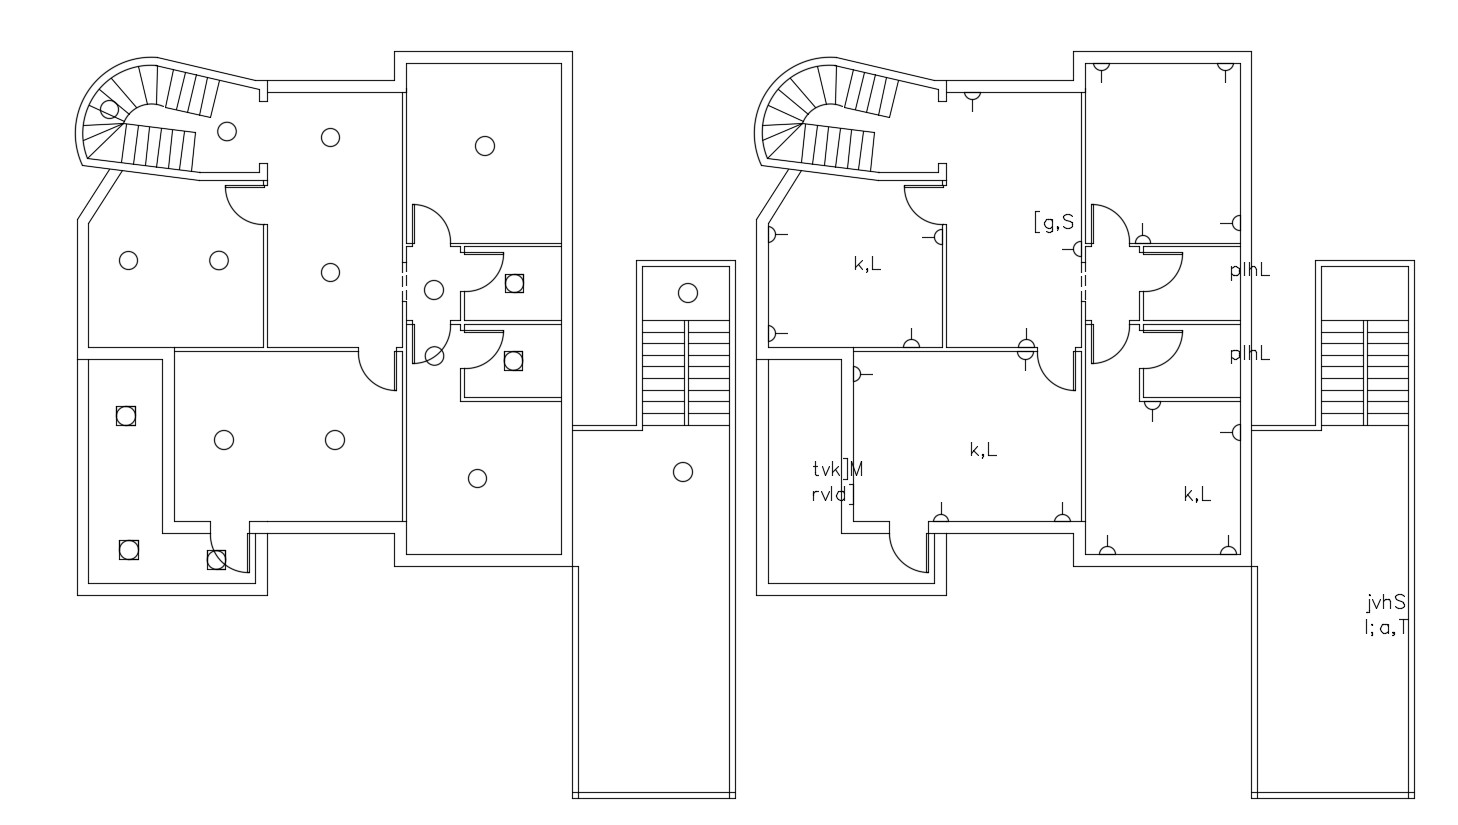 3 Bhk House Electrical Layout Plan Cad File